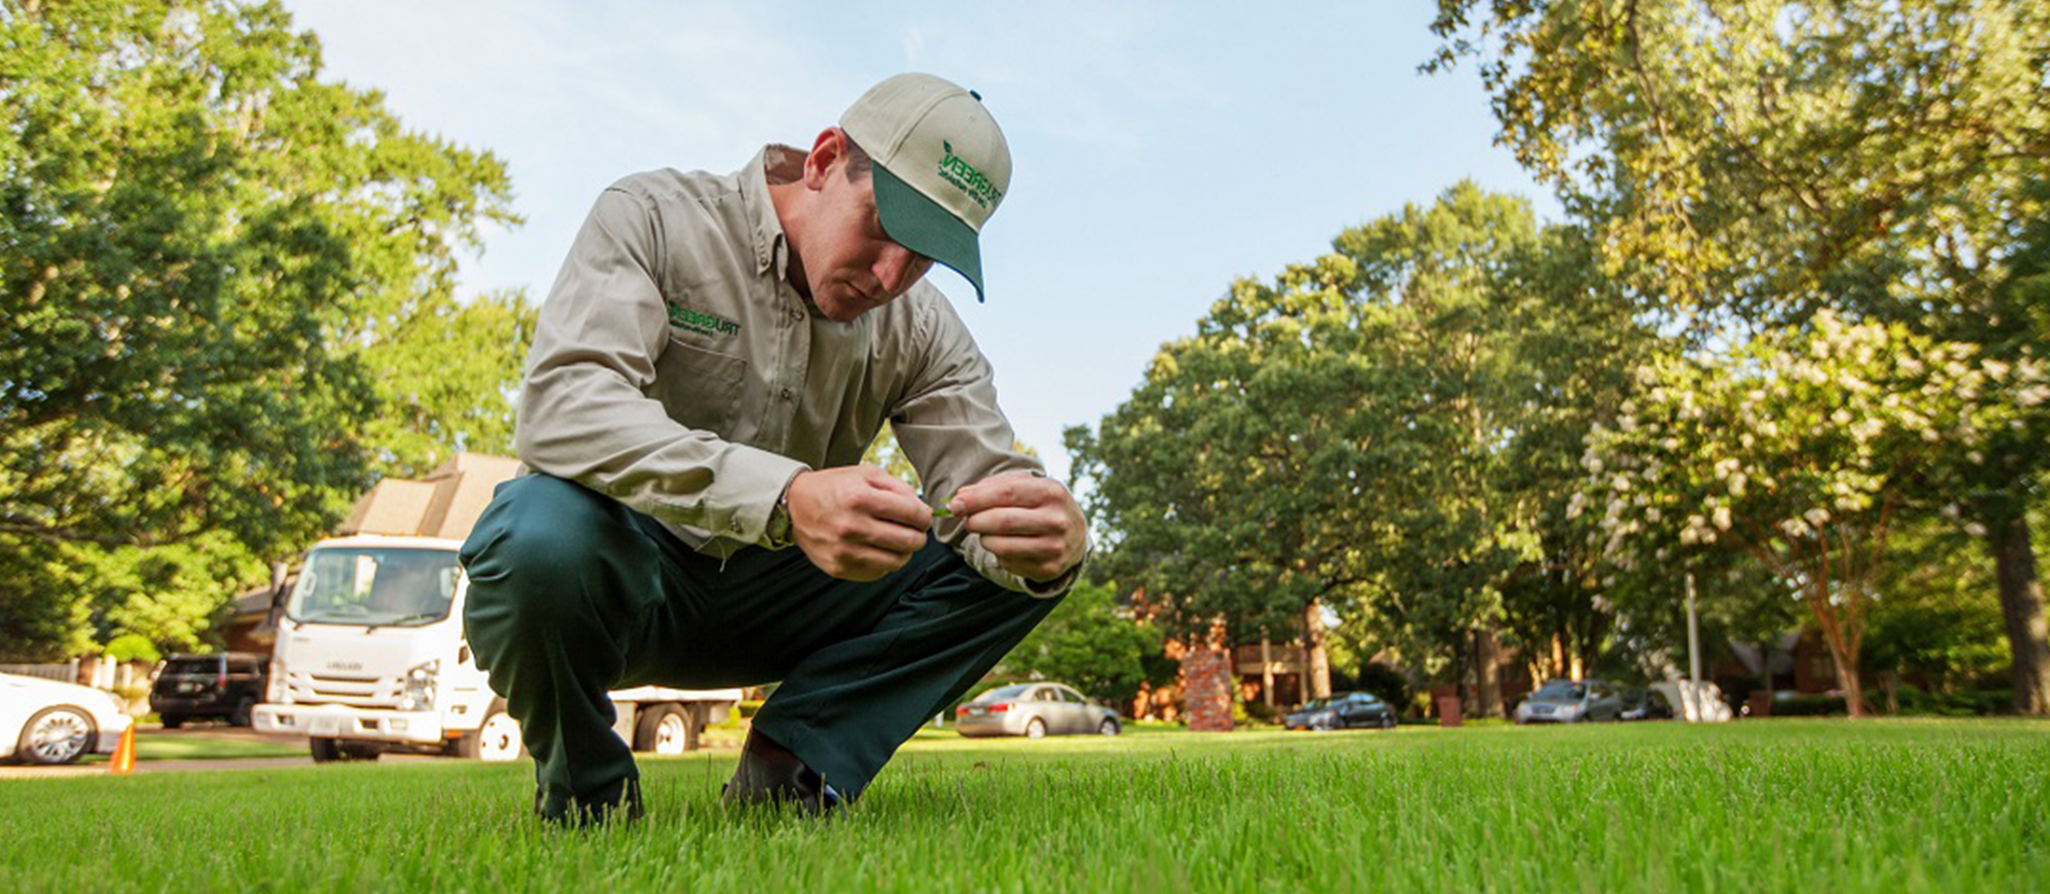 TruGreen Certified Specialist inspects a lawn health